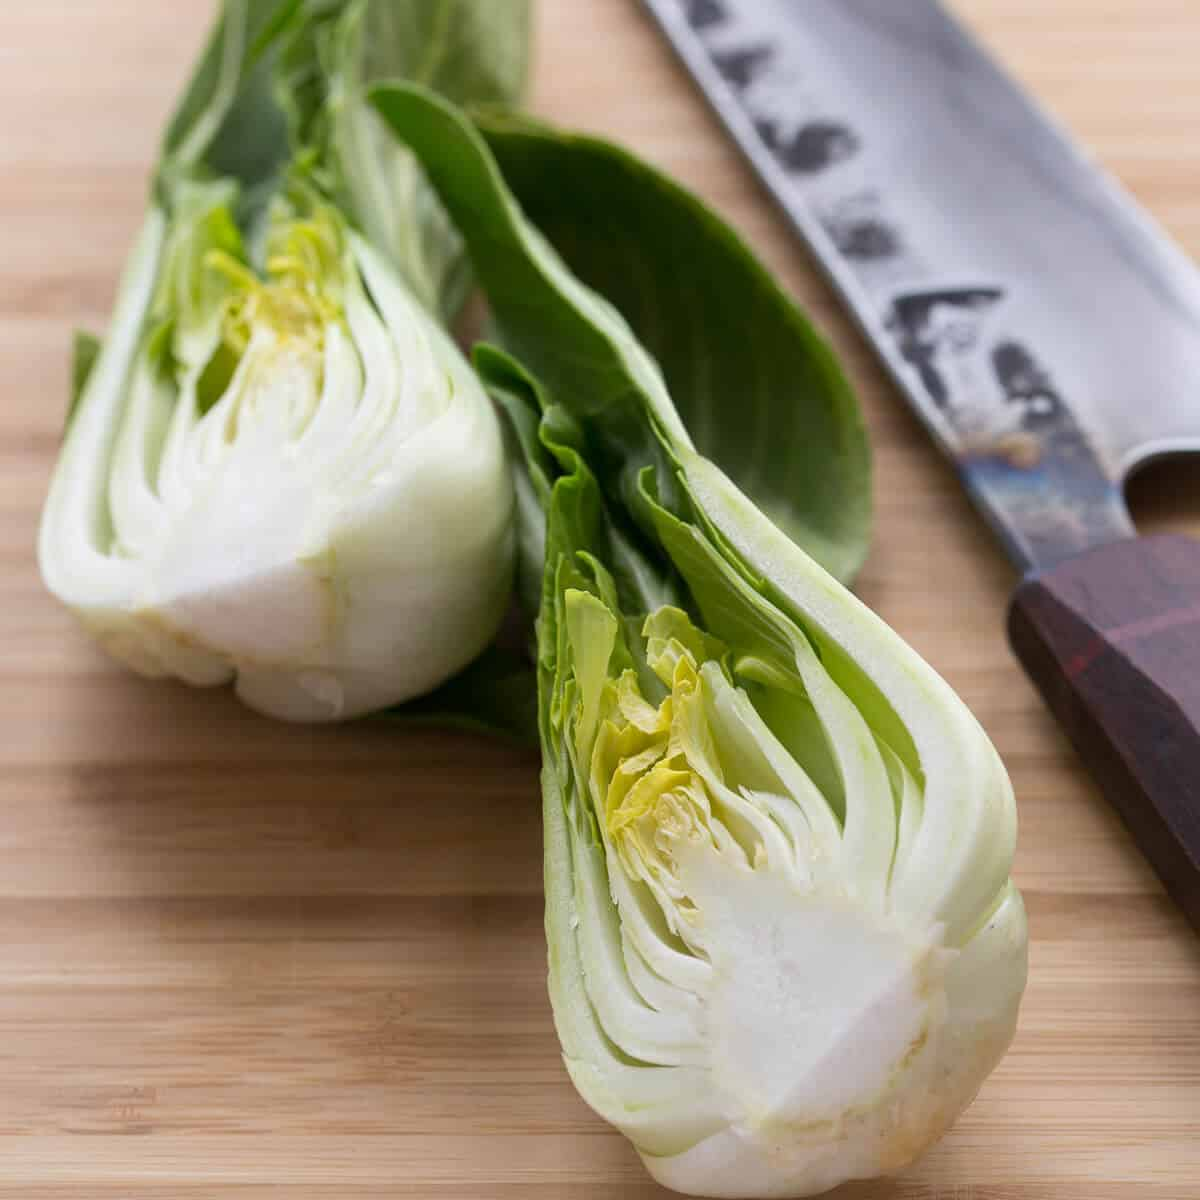 cut bok choy on wooden board next to a knife.